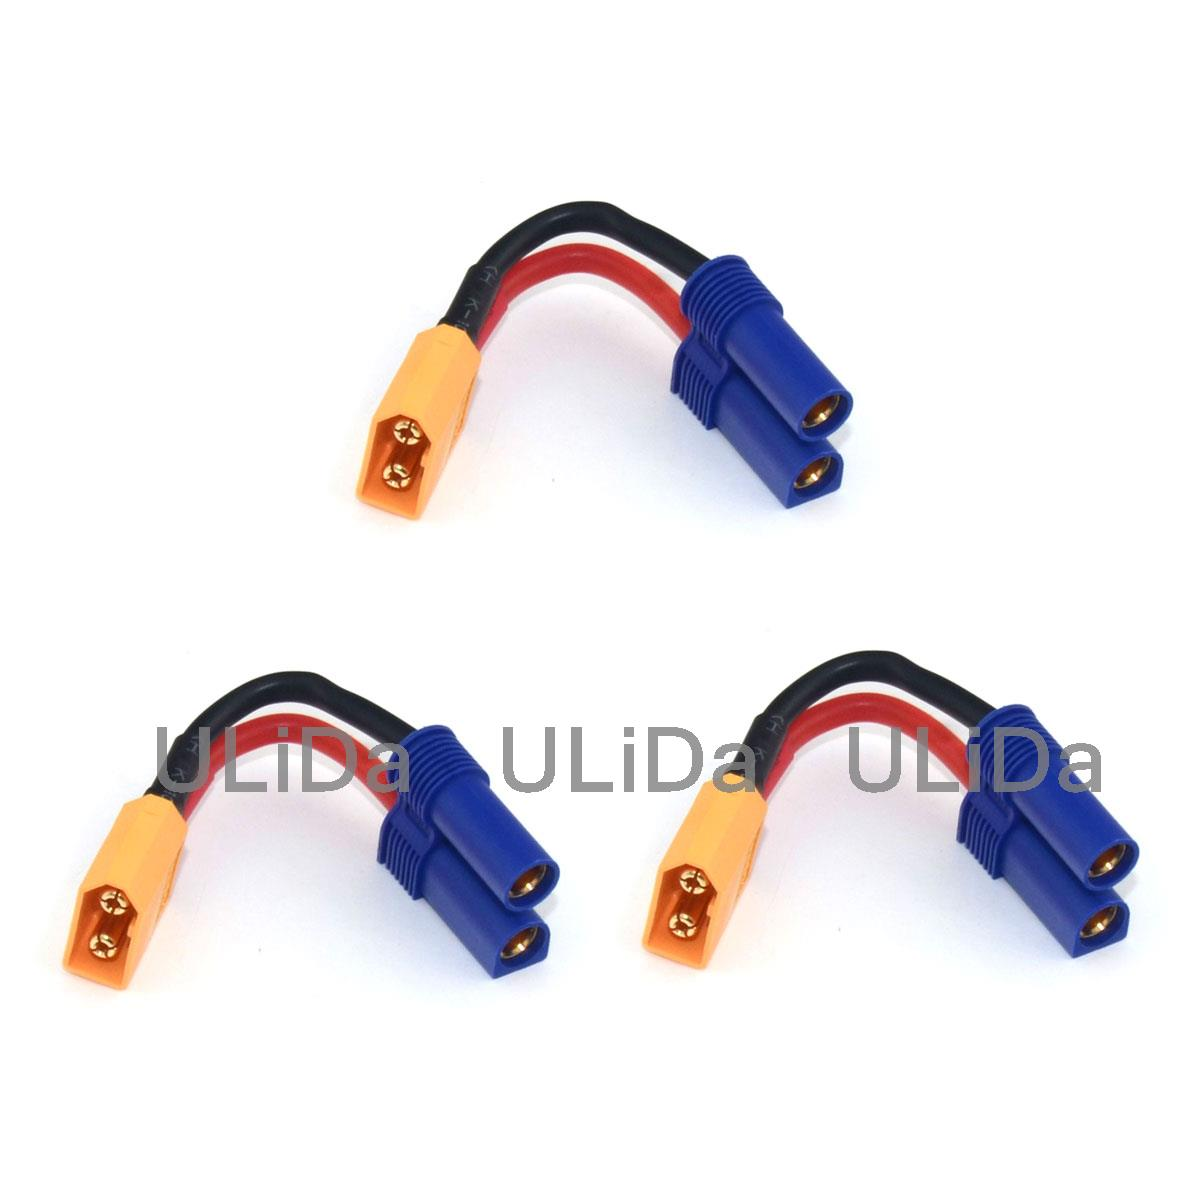 3pcs XT60 Plug Male to EC5 Style Female Connector Adapter /w 14AWG Wire for Rc Multirotor акустические кабели atlas hyper bi wire 2 to 4 5 0m transpose z plug gold